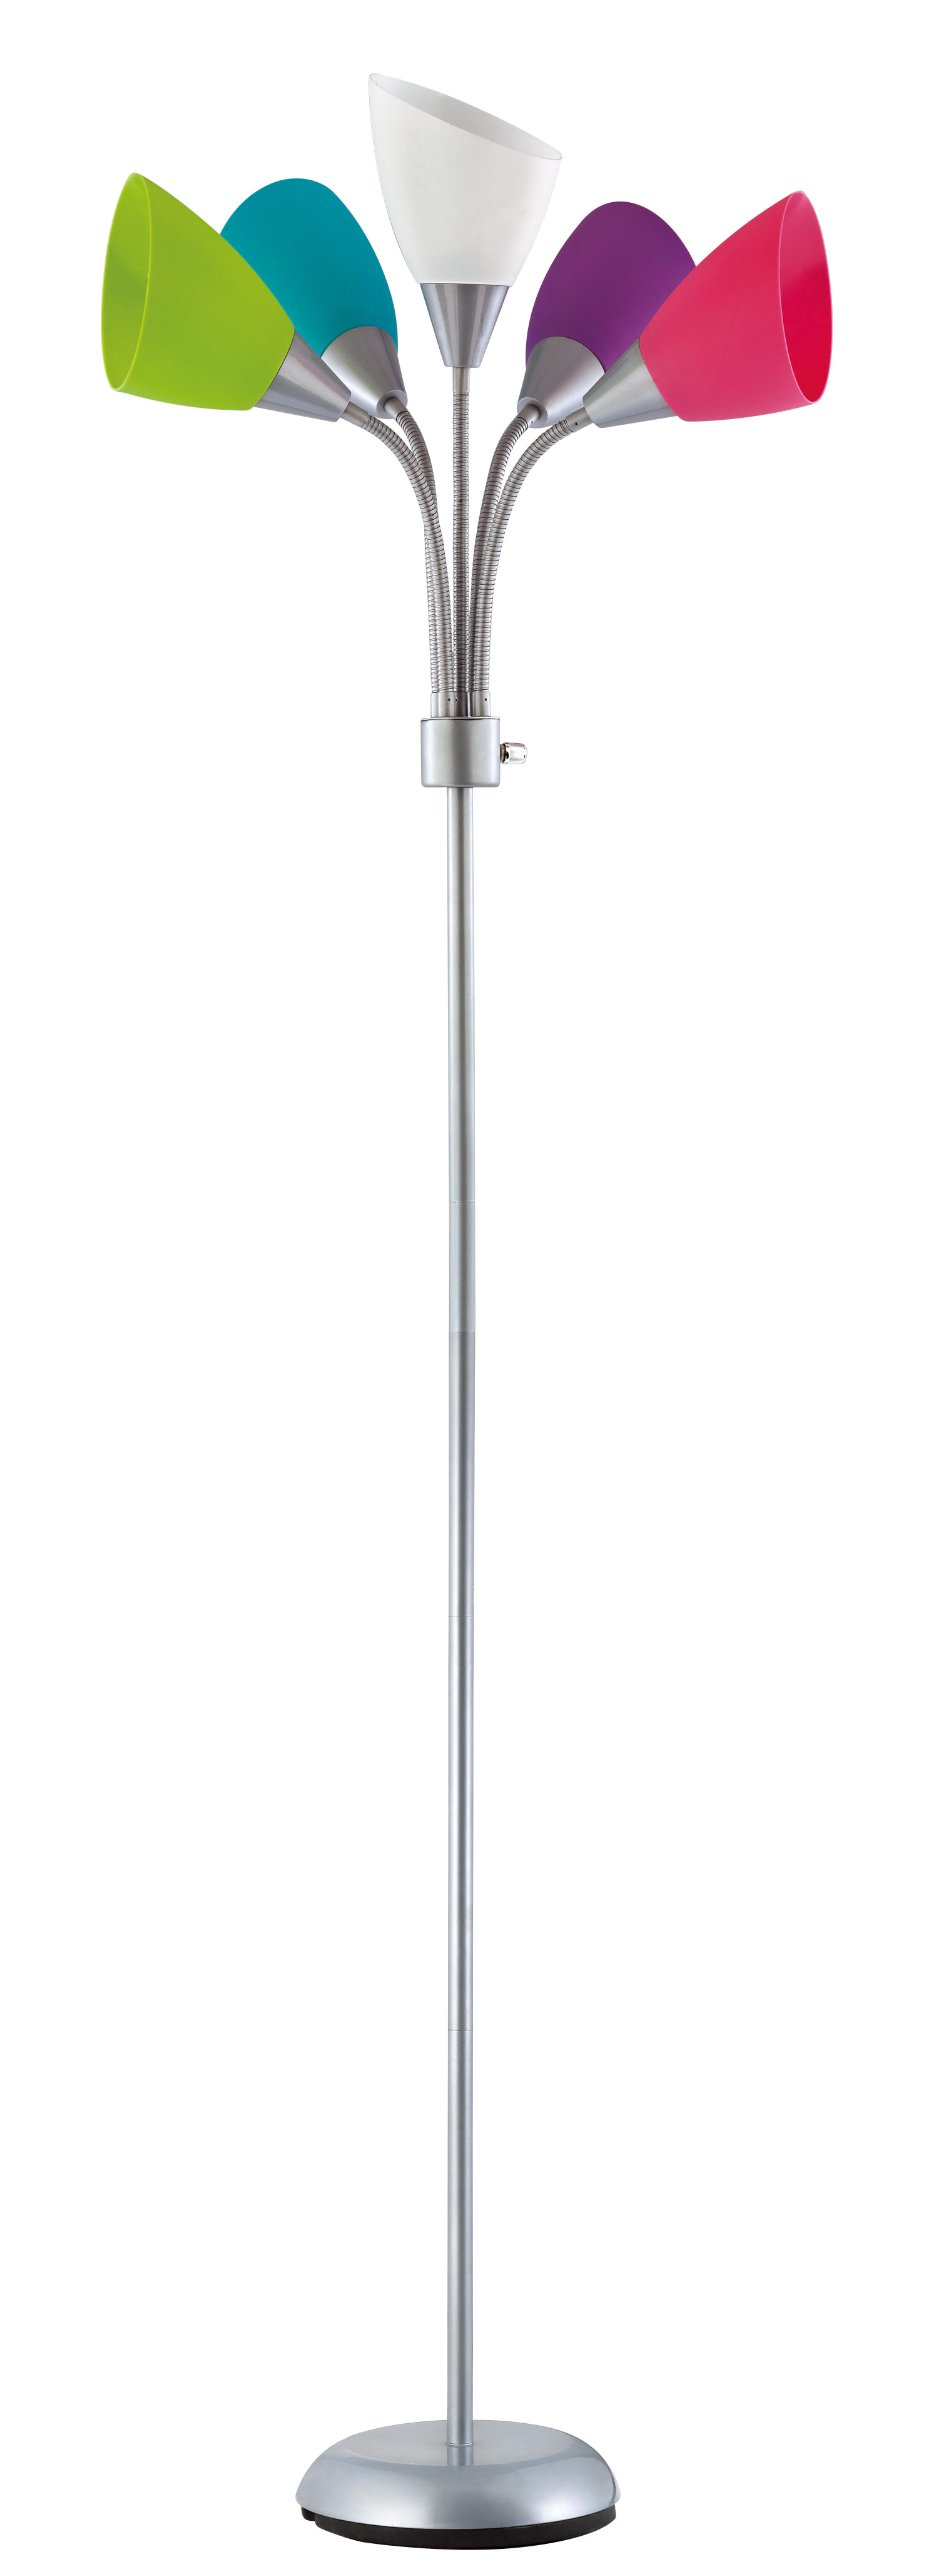 Design Trends 19002-343 Contemporary Adjustable Floor Lamp with Five Multi-Colored Shades, Silver, 1-Pack